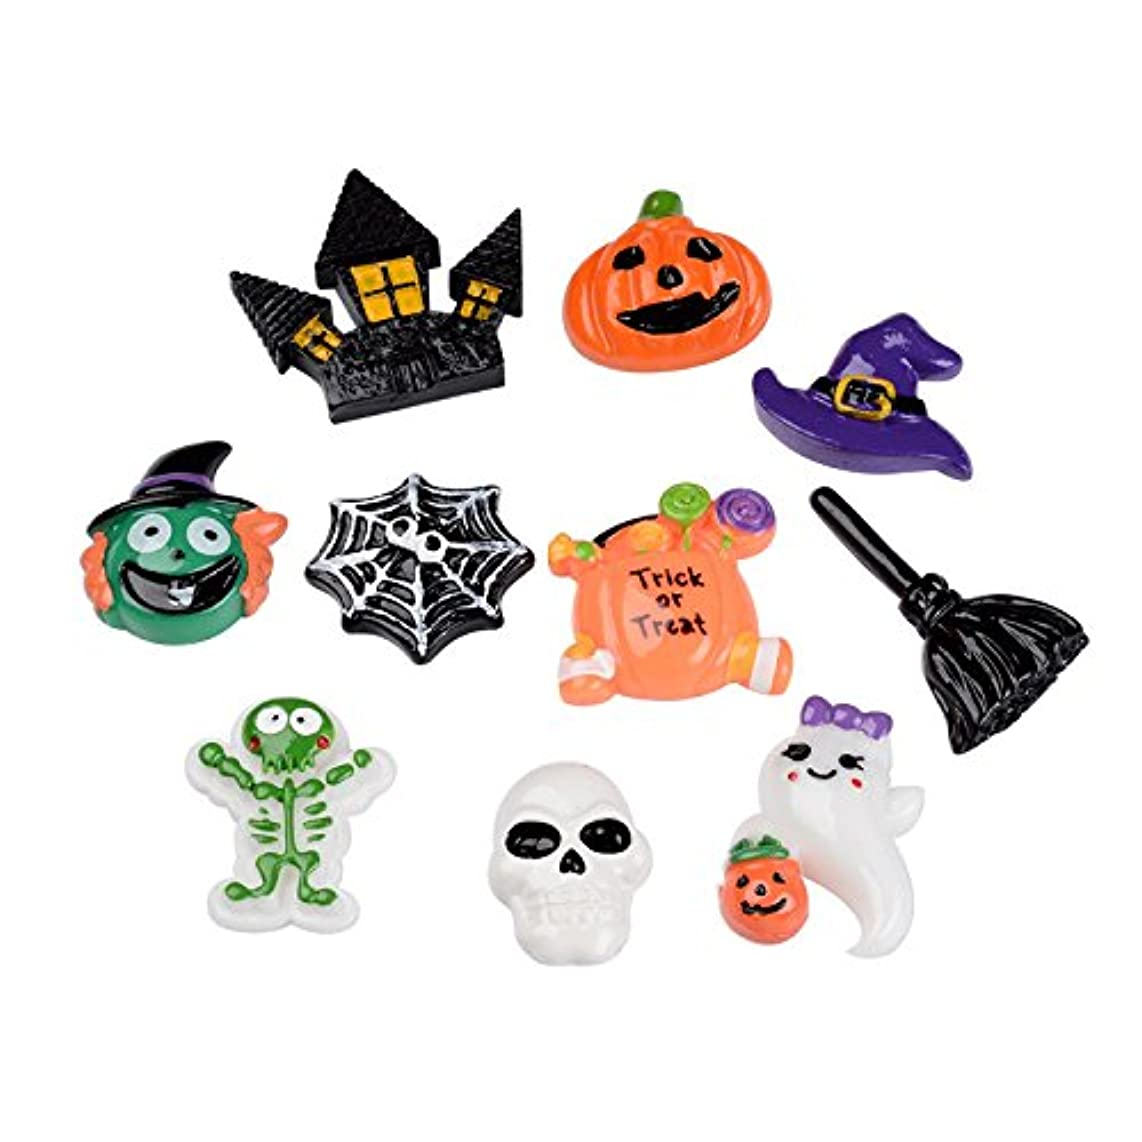 Pandahall 10 PCS Halloween Theme Resin Cabochons for Craft Making, Pumpkin Jack-o'-lantern, Witch Hat, Skull, Witch Besom, Skeleton, Ghost, Castle, Spider Web, Witch Head